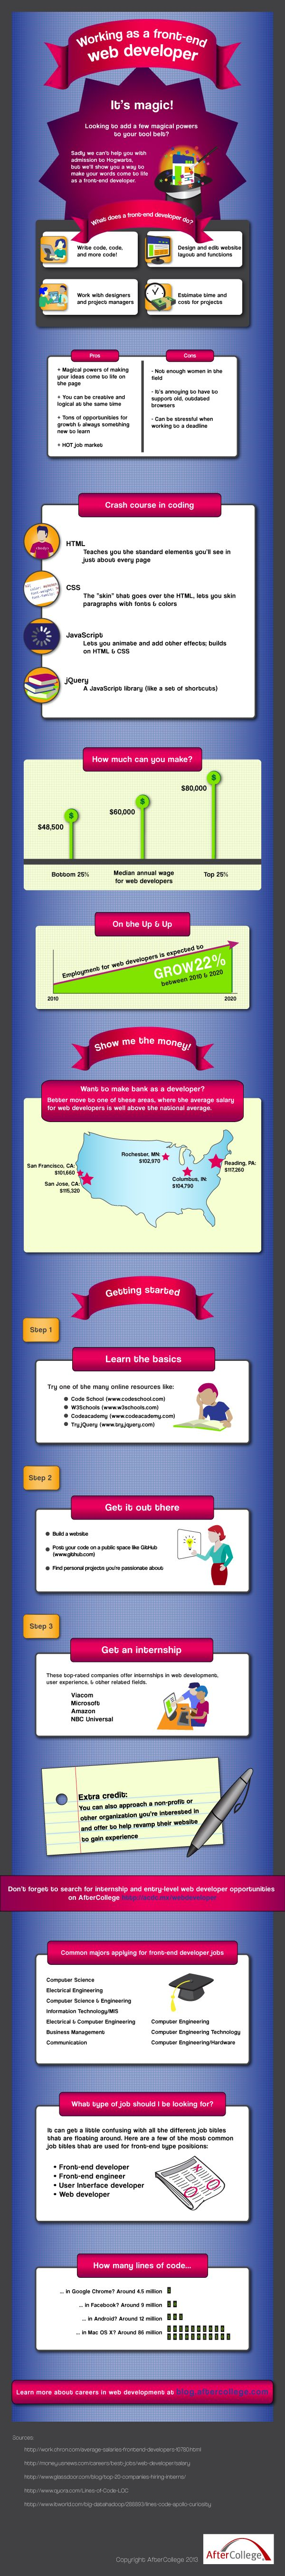 Working as a Front-End Web Developer: It's Magic! [Infographic] - AfterCollege